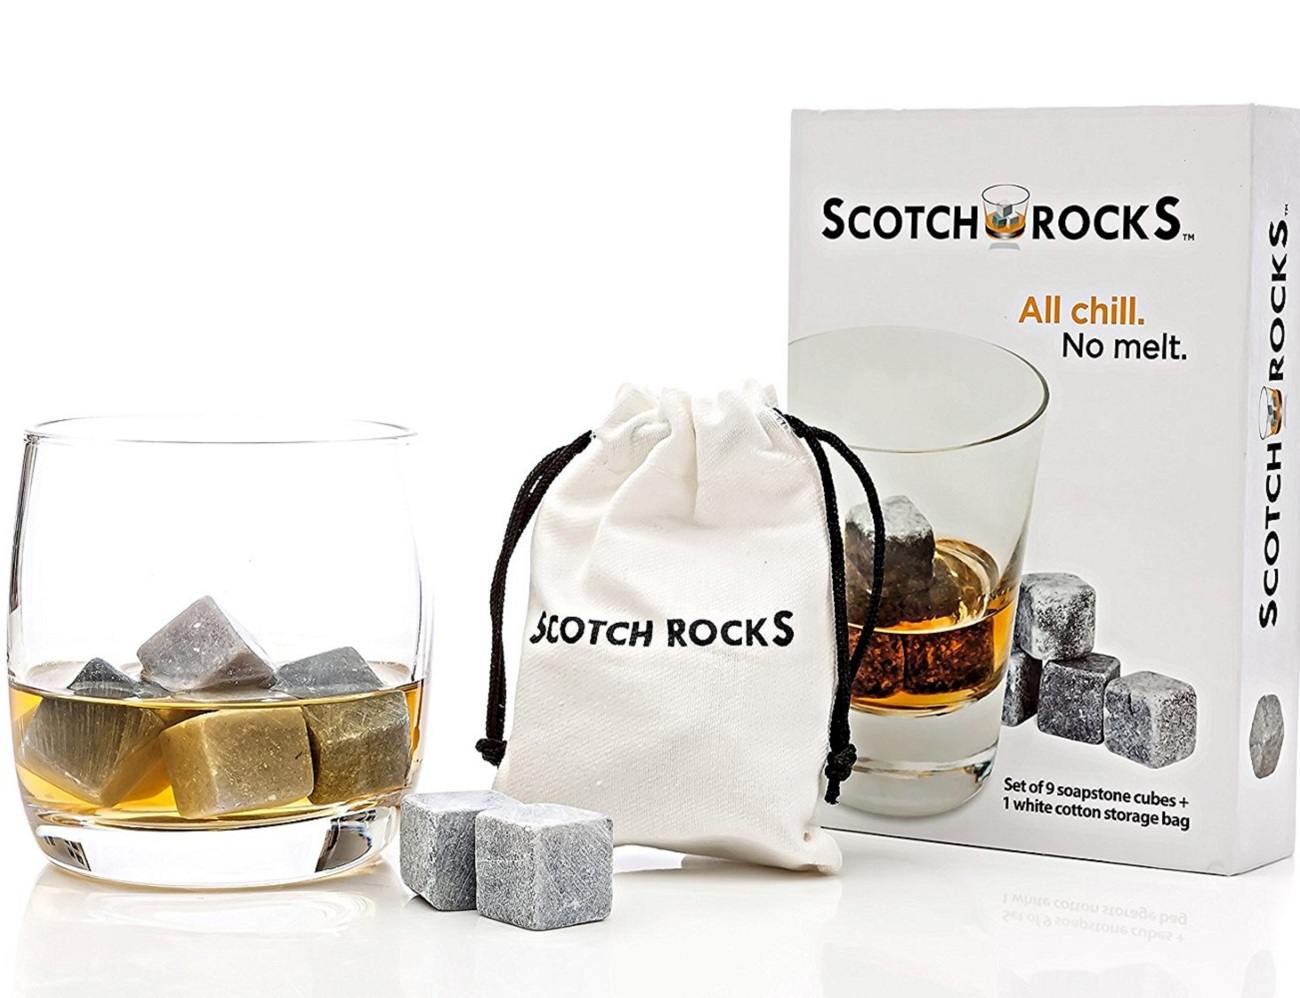 Scotch Rocks